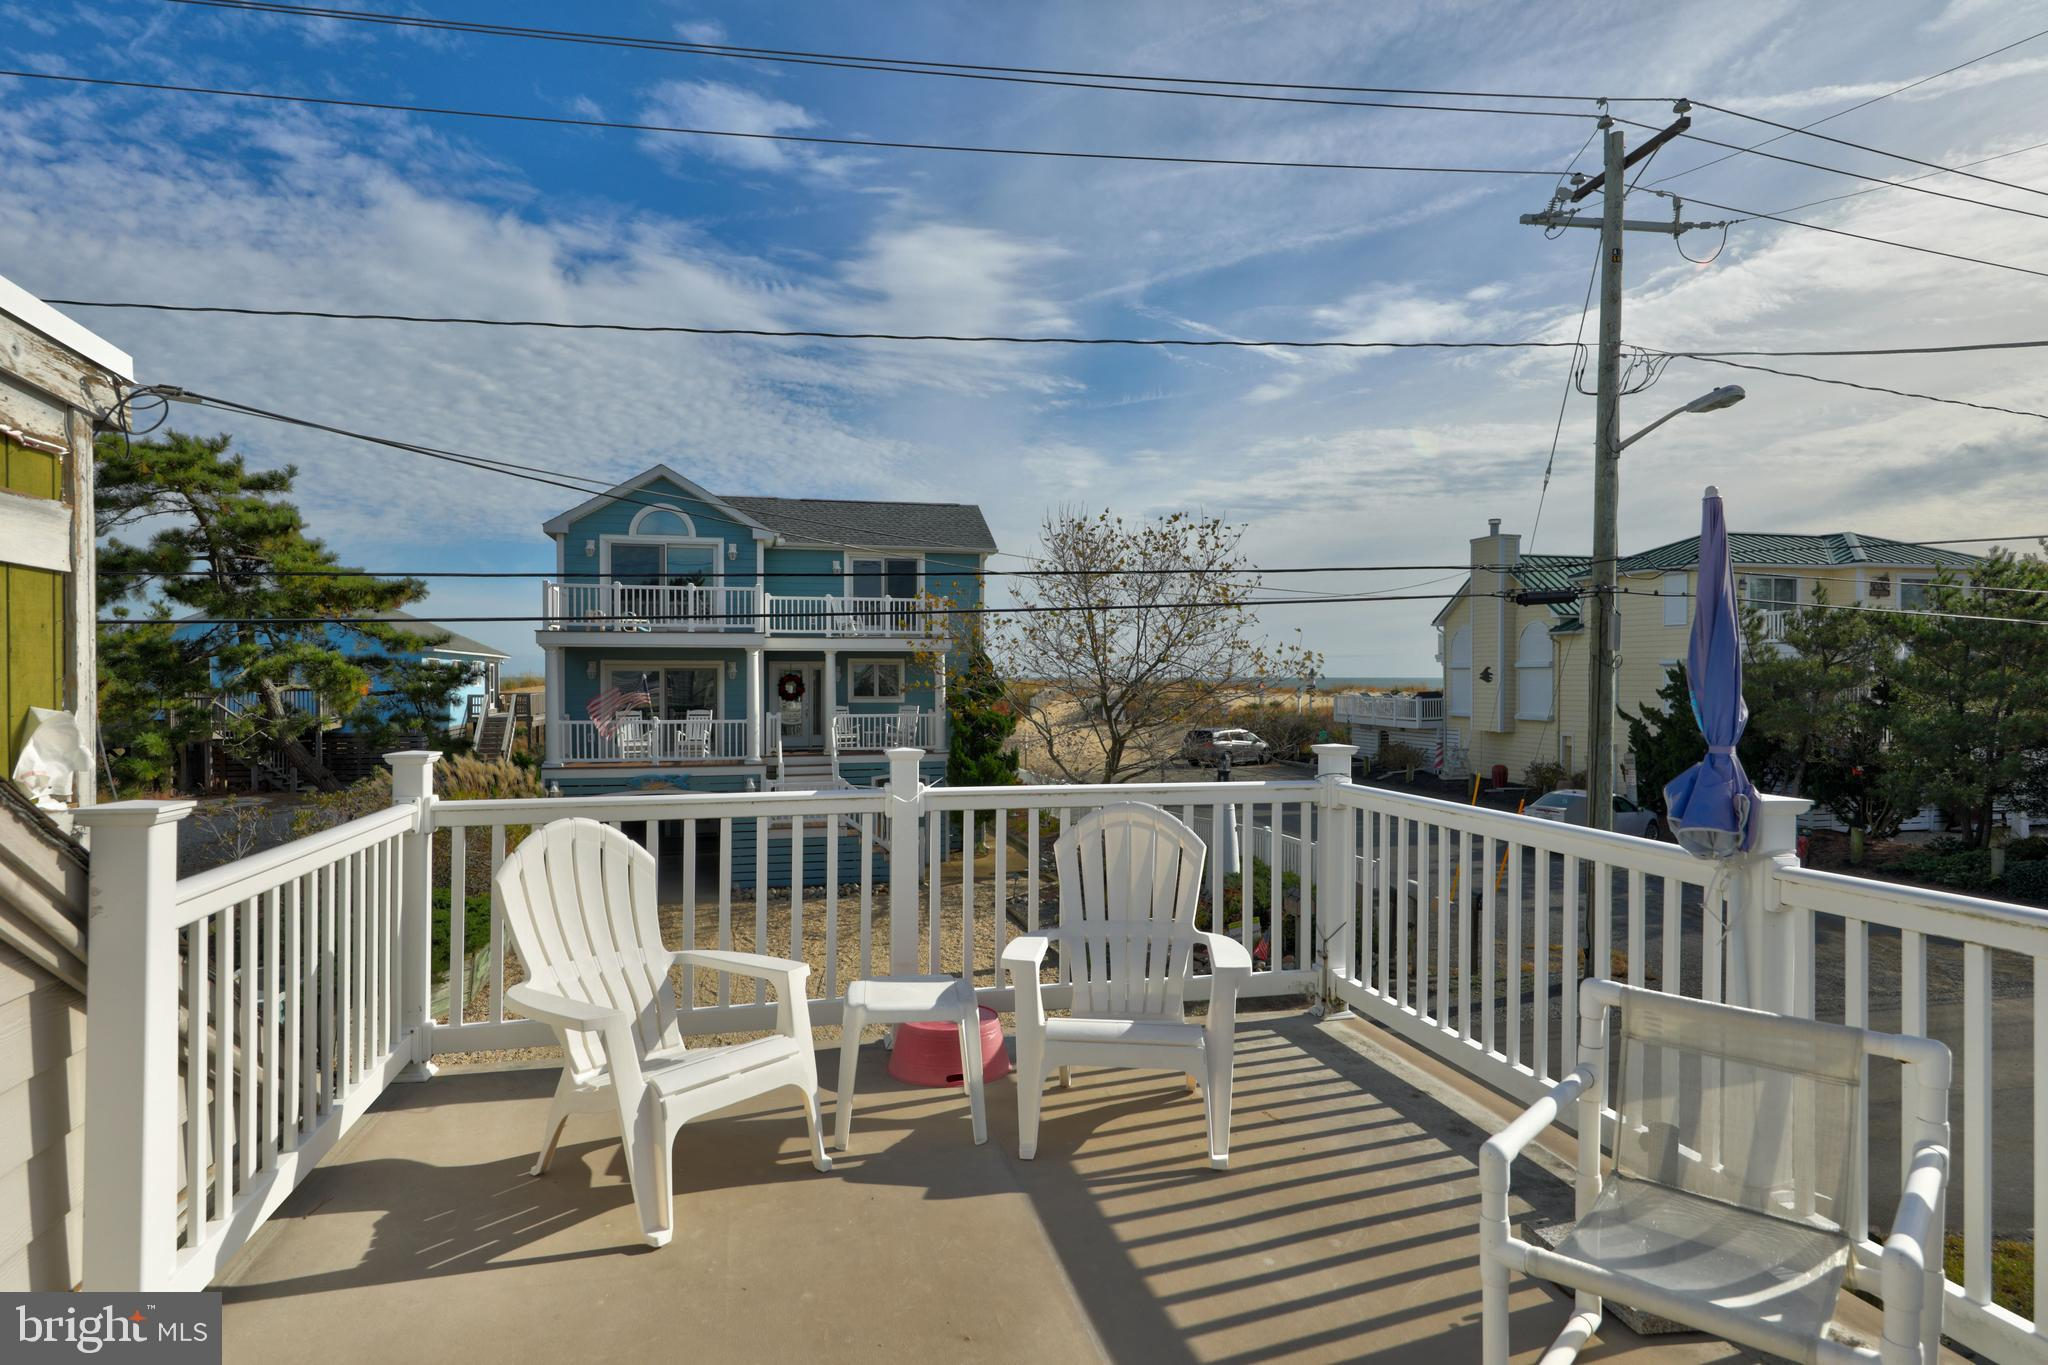 """LOCATION!!  Oceanblock!  Second house from Ocean Beaches in Fenwick Island, and One block south of Fenwick Island State Park!  When it's location you're looking for this is it!  Corner property just waiting for you.  This four bedroom cottage offers a front porch with roof top deck.  A beautiful spacious library for all of your beach reads and more.   First floor offers kitchen, living room, 2 bedrooms, laundry and the wonderful library.  Second floor offers two bedrooms, access to the roof top porch deck, spacious walk in attic storage.   The large spacious garage area offers approx. 480 sq. ft  giving you extra space for  a workshop/storage area and an additional storage/loft area is located over garage.   Great location on the north end of Fenwick Island within town limits.   Home sold """"AS IS""""      Sold Unfurnished   Masks and gloves required for all showings."""